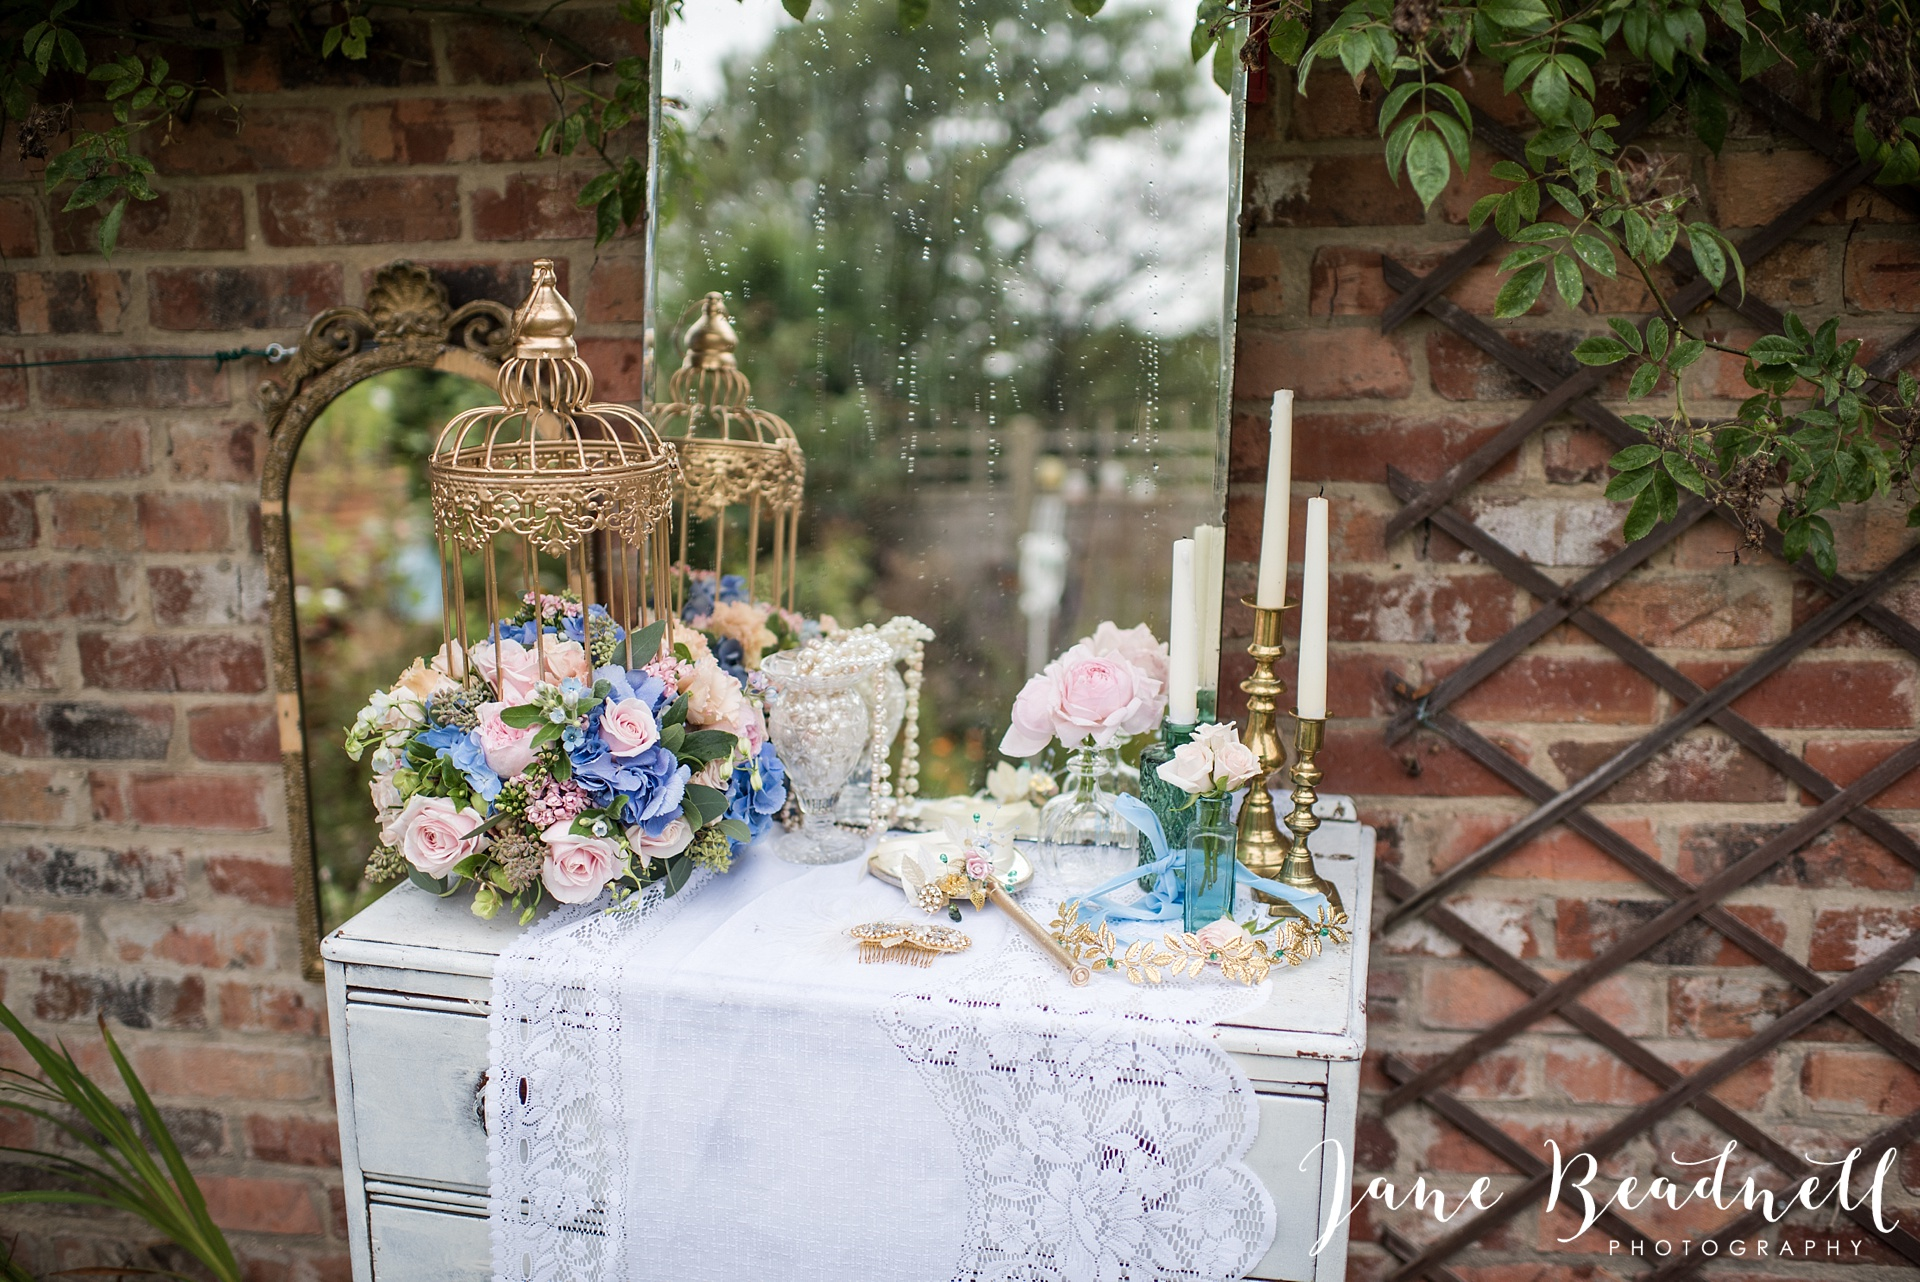 fine-art-wedding-photographer-jane-beadnell-photography-yorkshire-wedding-photographer_0009